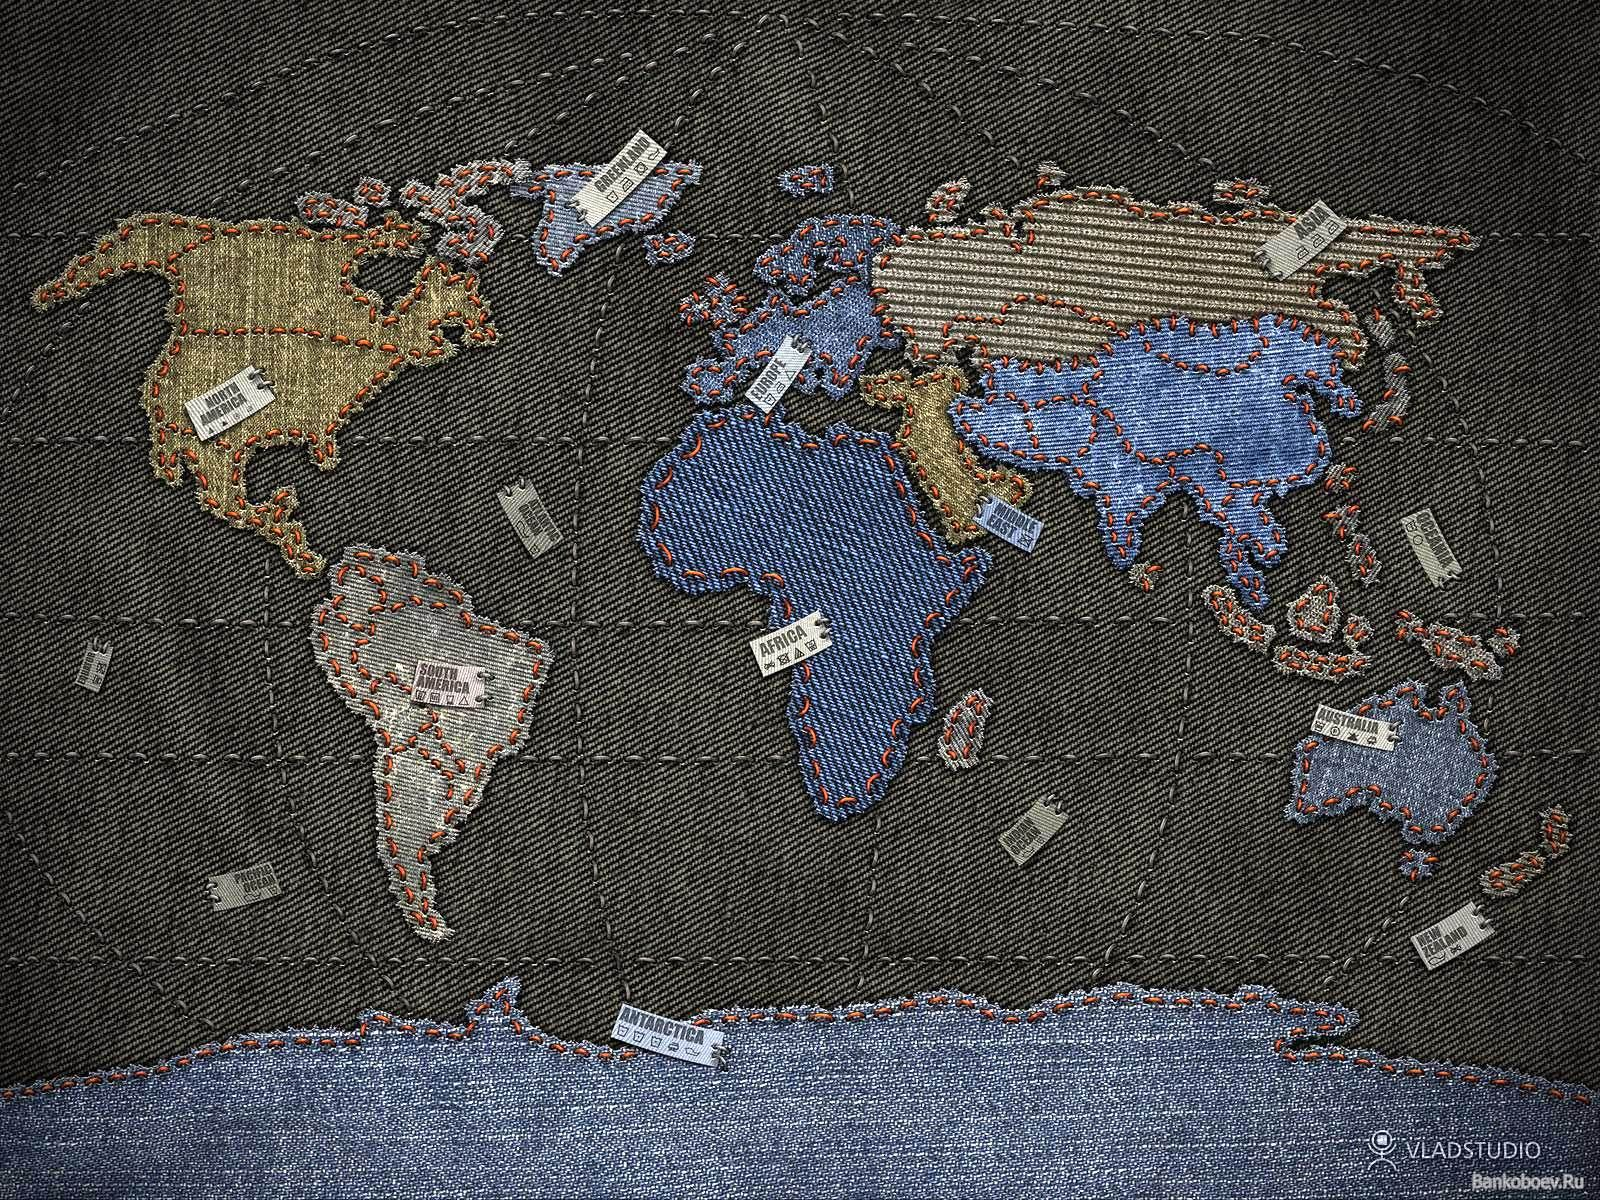 Hq wallpaper jeans world map 2560 x 1600 on the desktop high quality hq wallpaper jeans world map 2560 x 1600 on the desktop high quality gumiabroncs Gallery